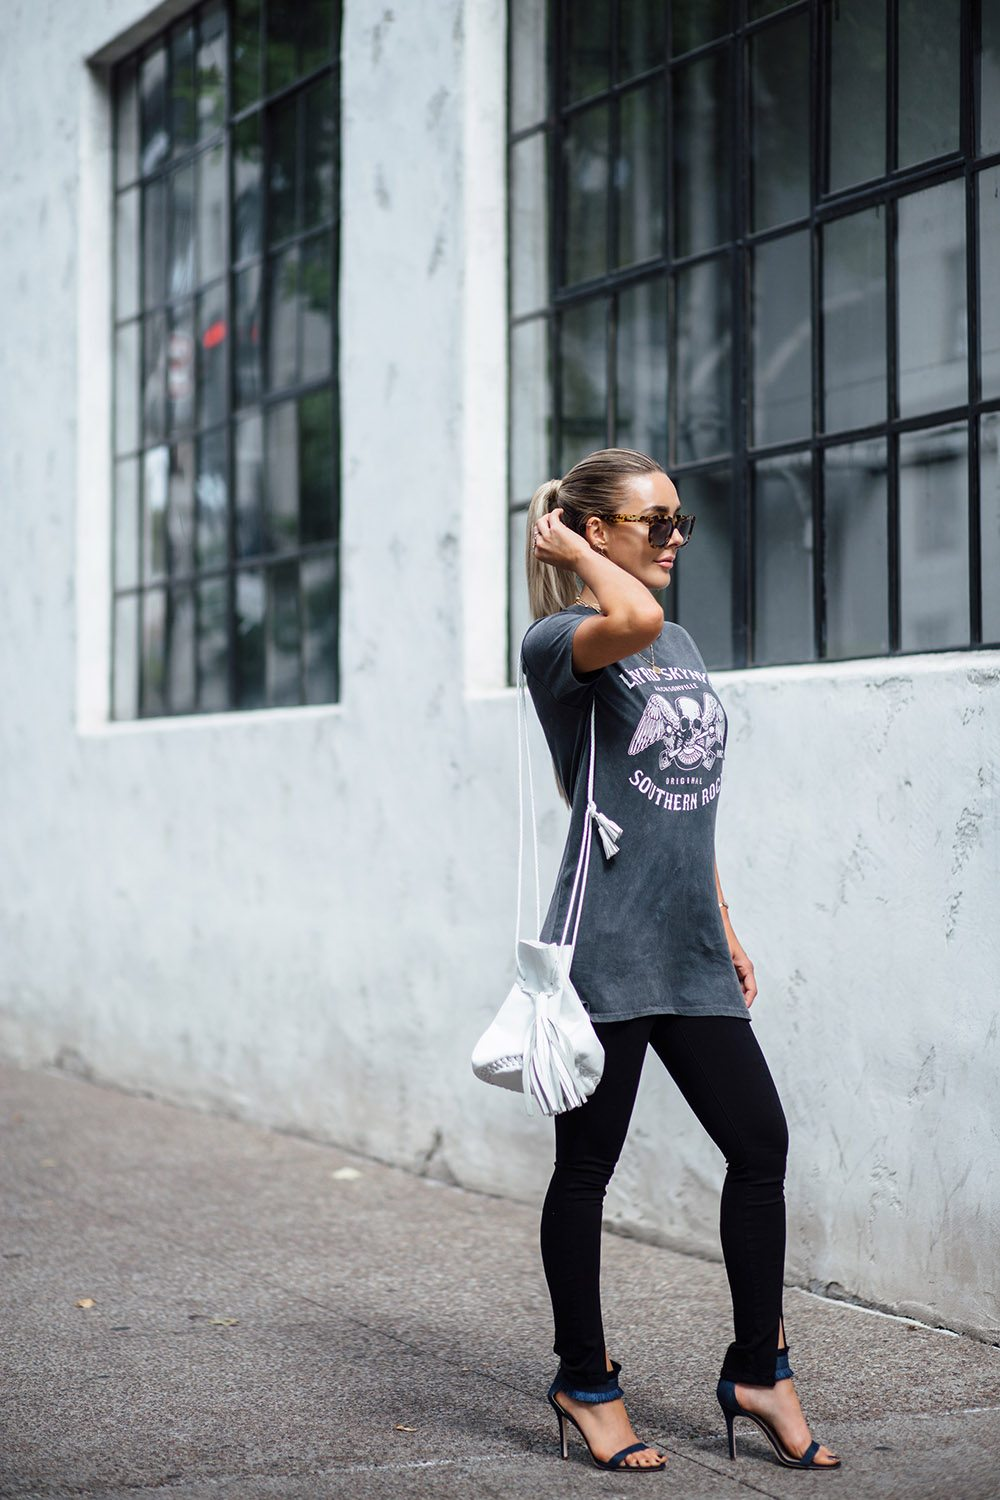 HOW TO BE A CONFIDENT BADASS IN AN INSTANT 2 | by the skinny confidential